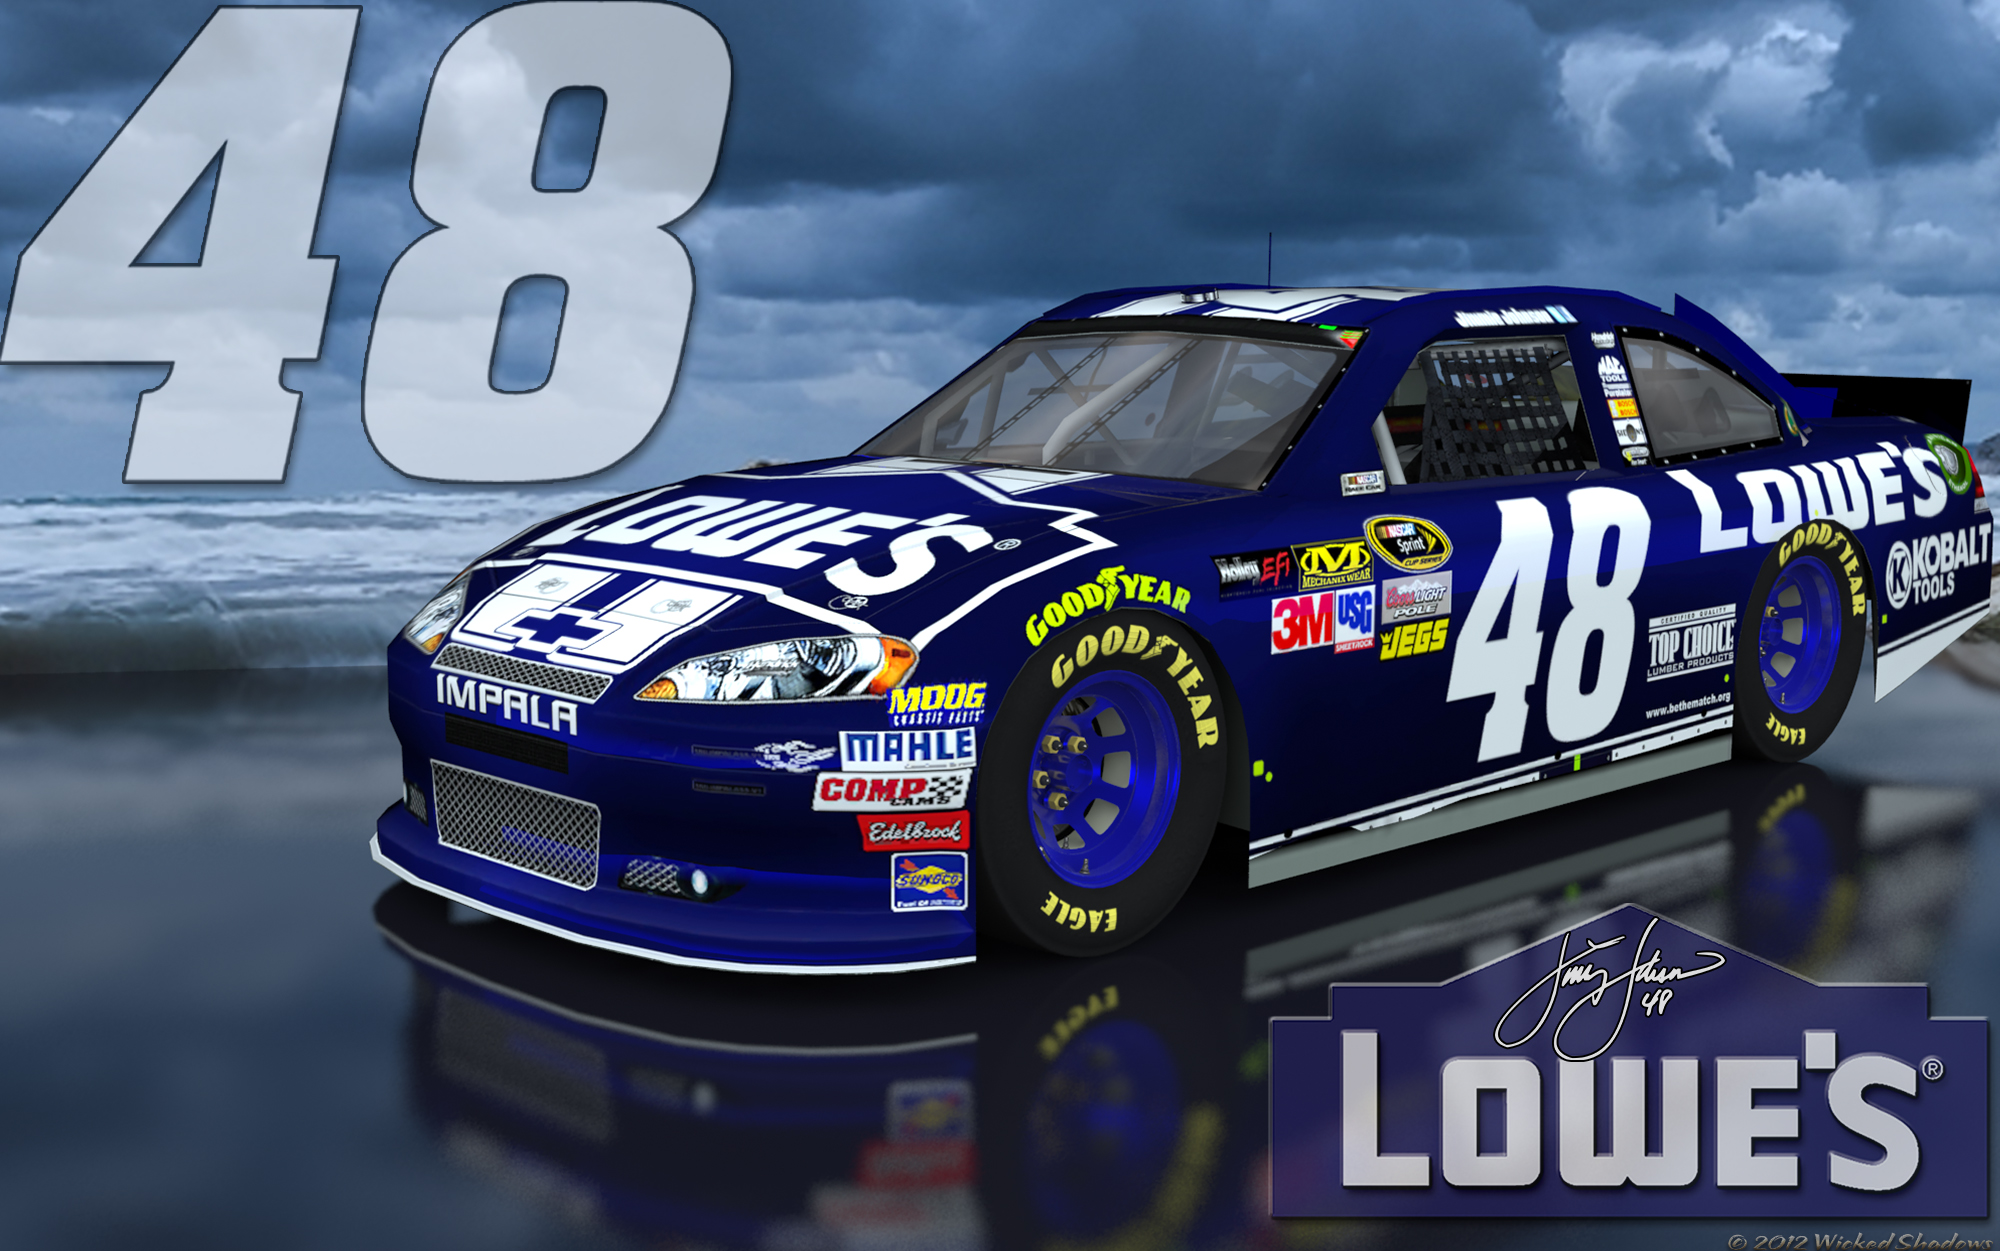 16x10 Alt Jimmie Johnson Lowes 48 Brighter Outdoor Wallpaper